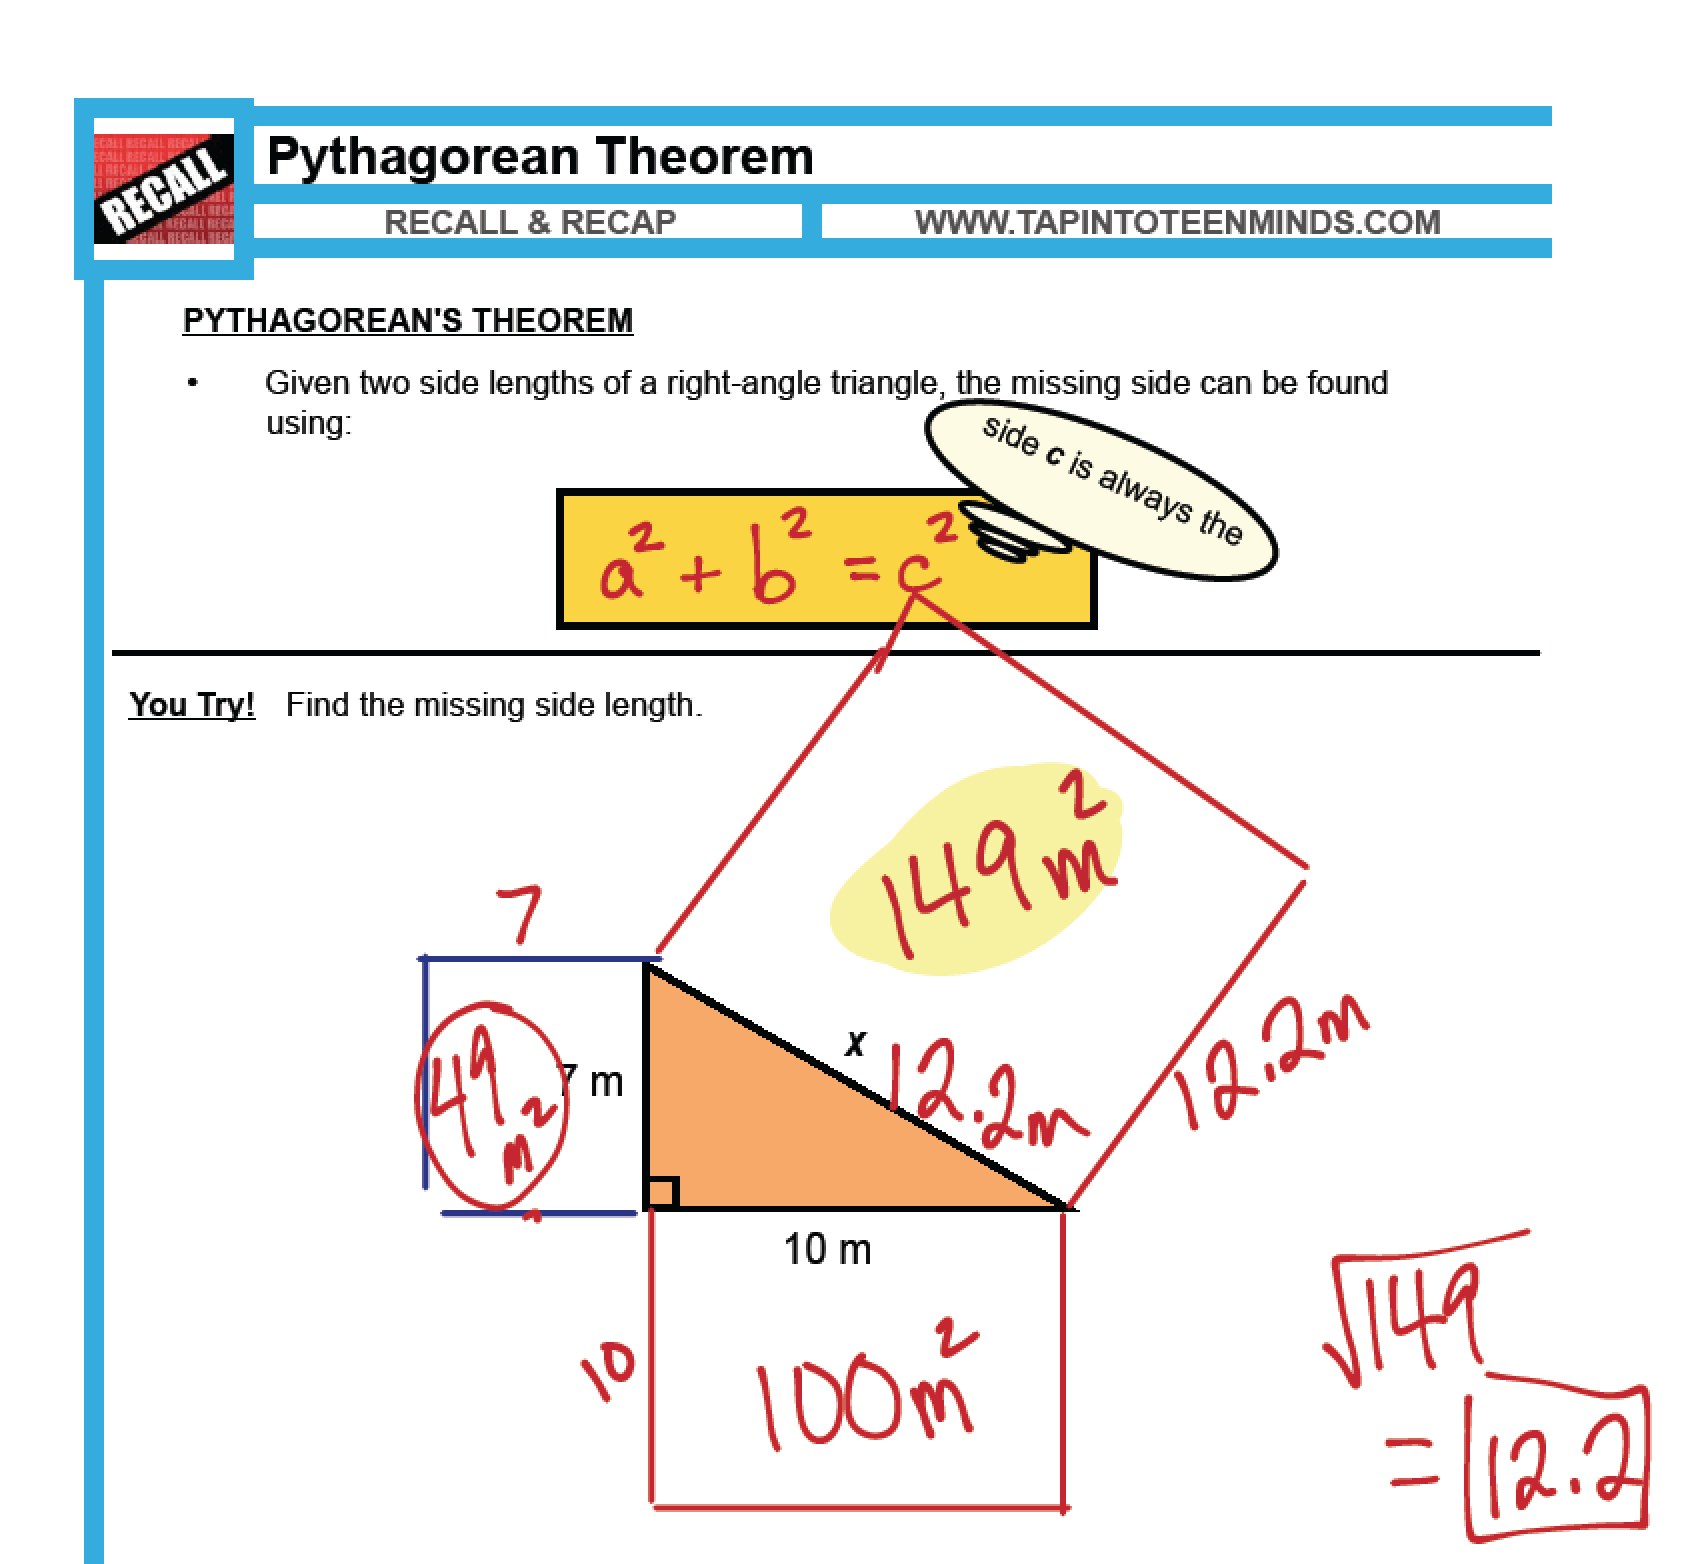 hight resolution of 1.5 - Pythagorean Theorem   MFM1P Grade 9 Applied Math Help